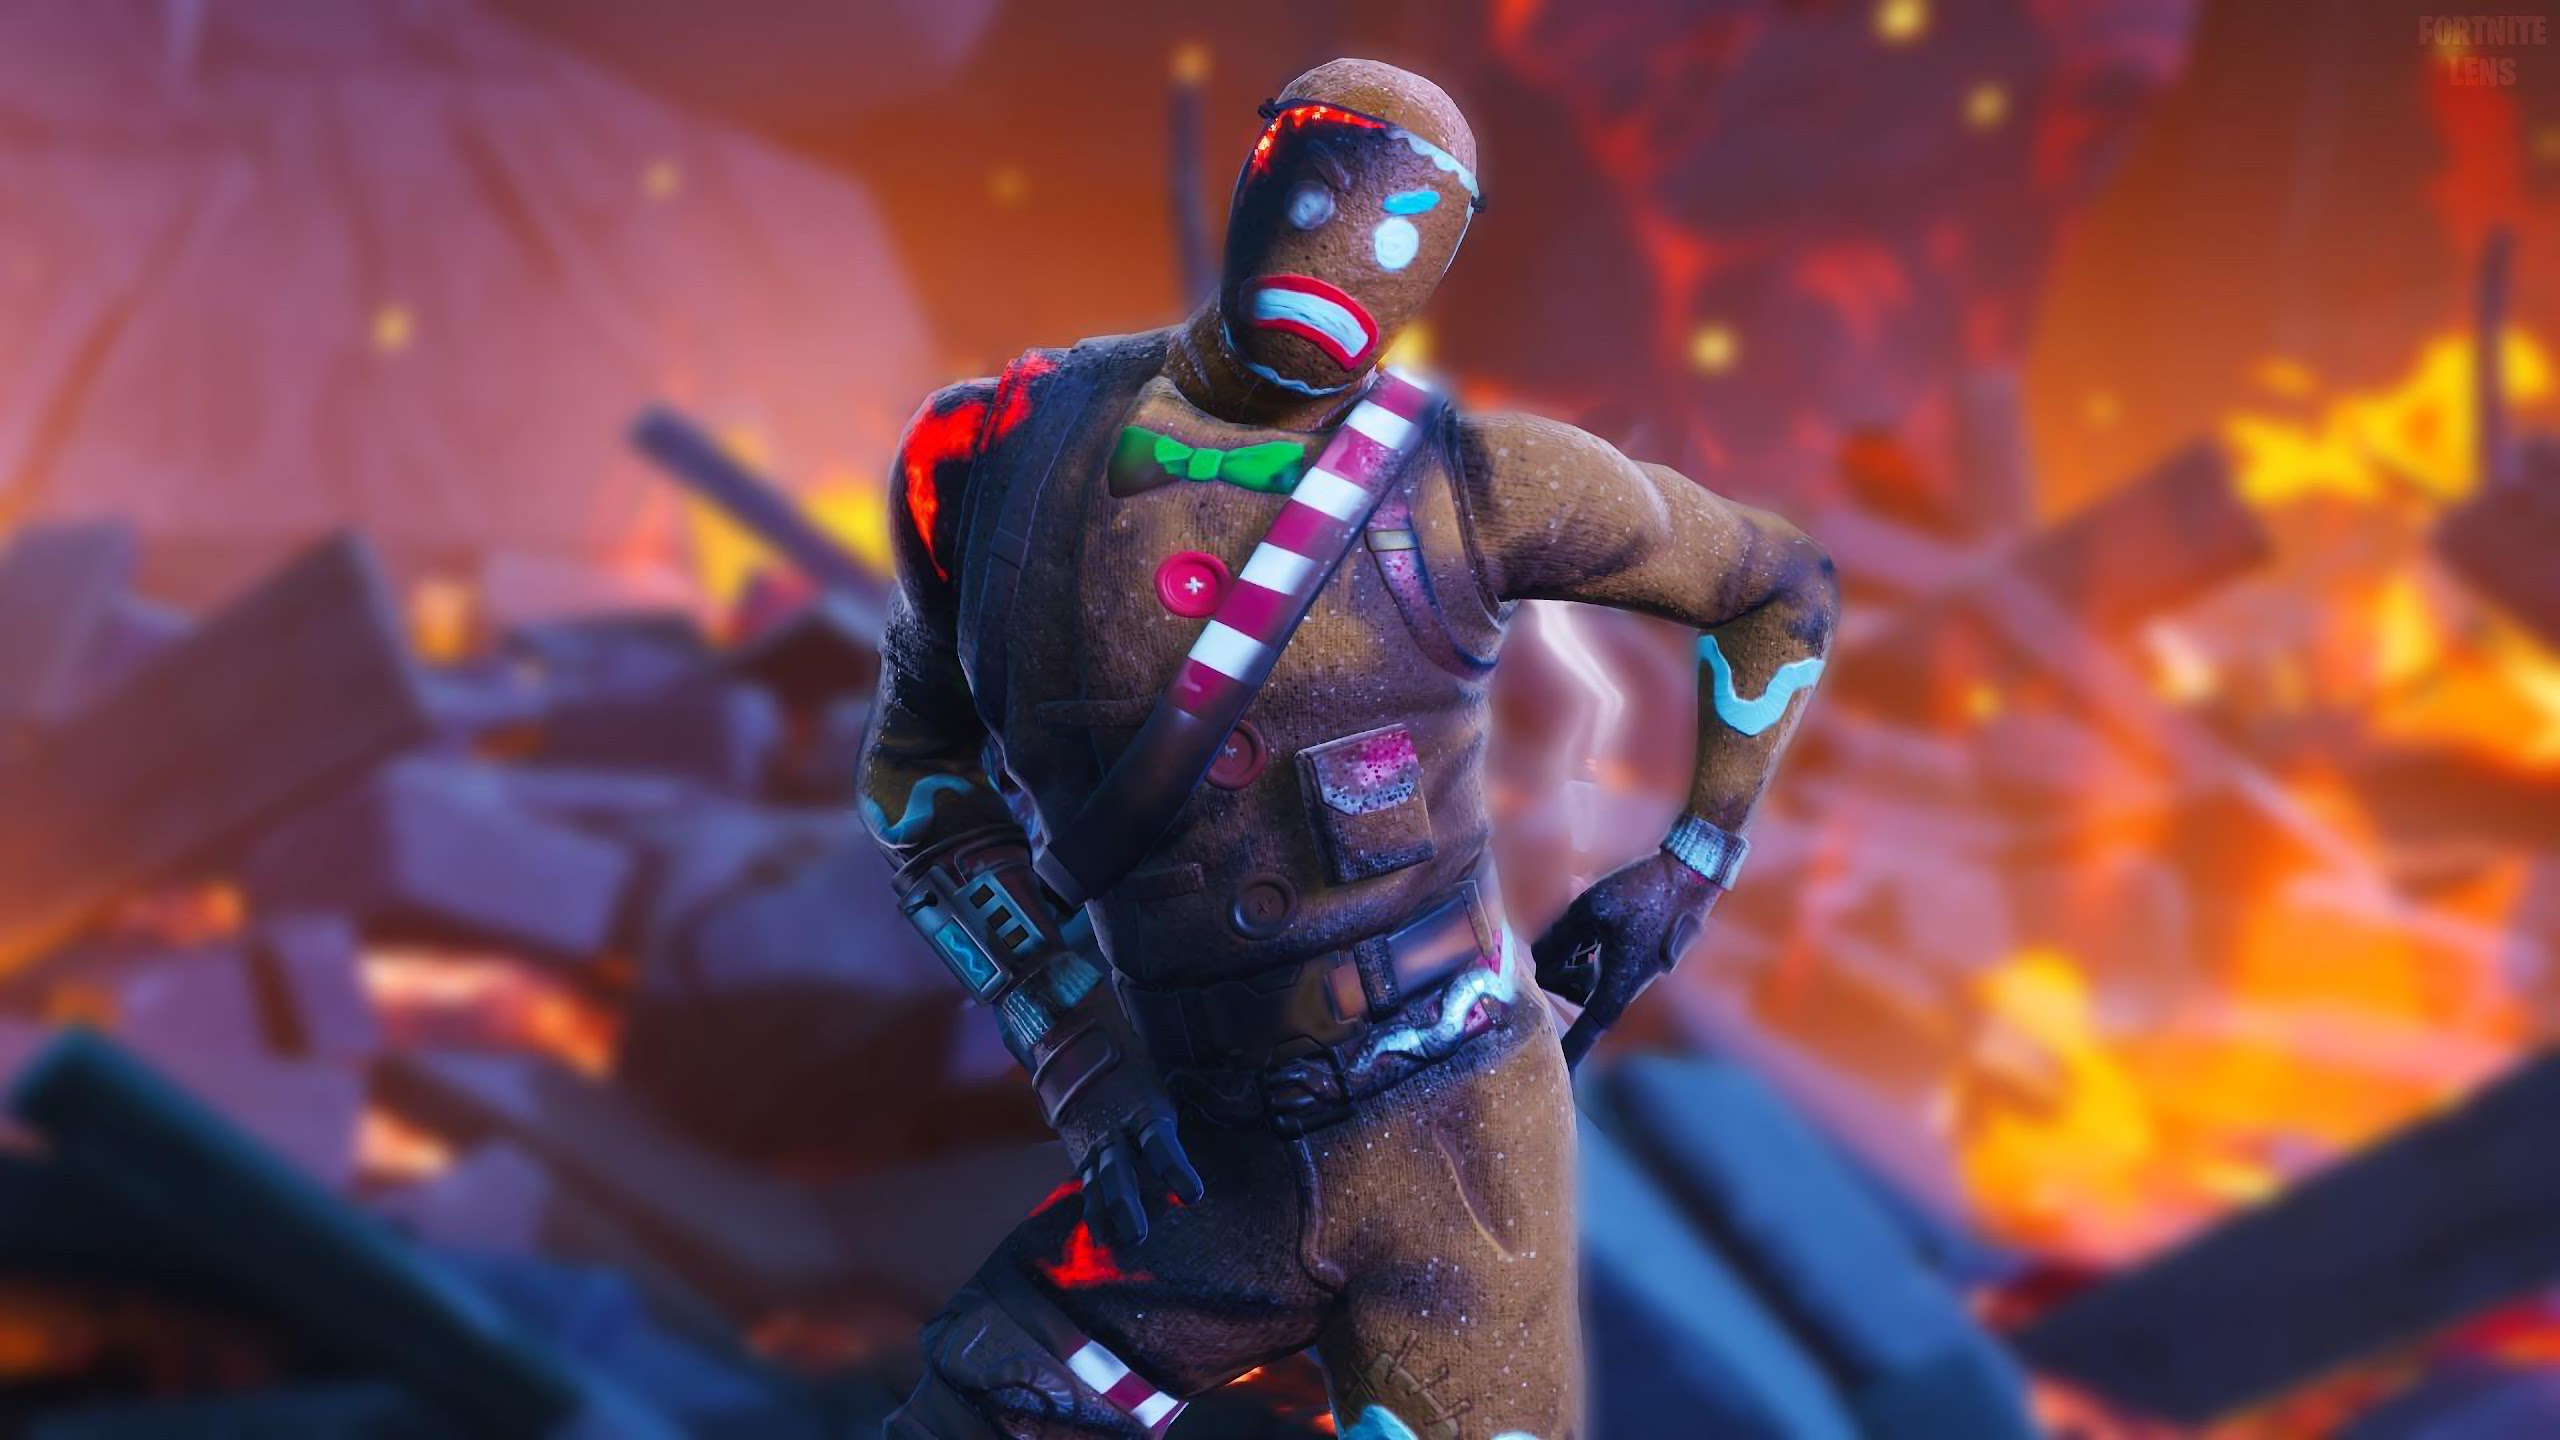 Fortnite Merry Marauder 4k Wallpaper 268